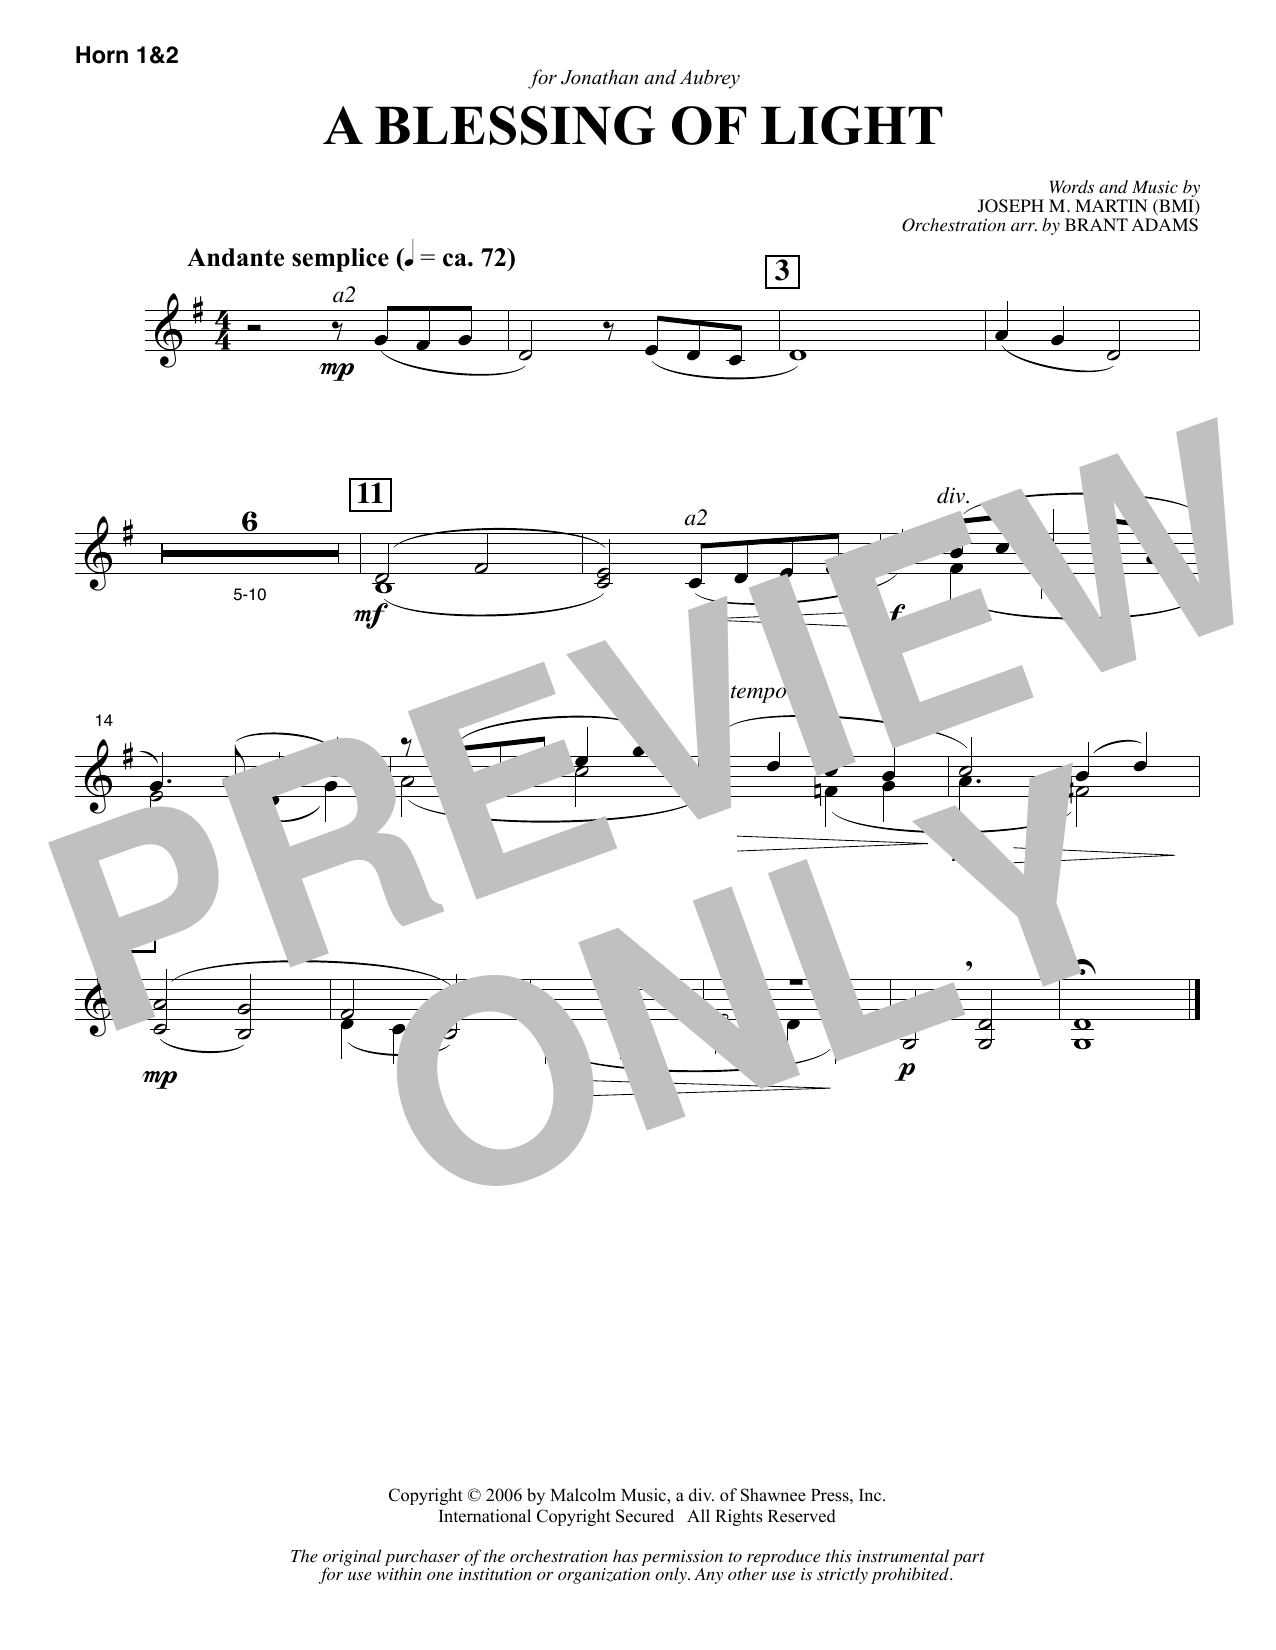 Joseph M. Martin A Blessing of Light - F Horn 1 & 2 sheet music notes and chords. Download Printable PDF.